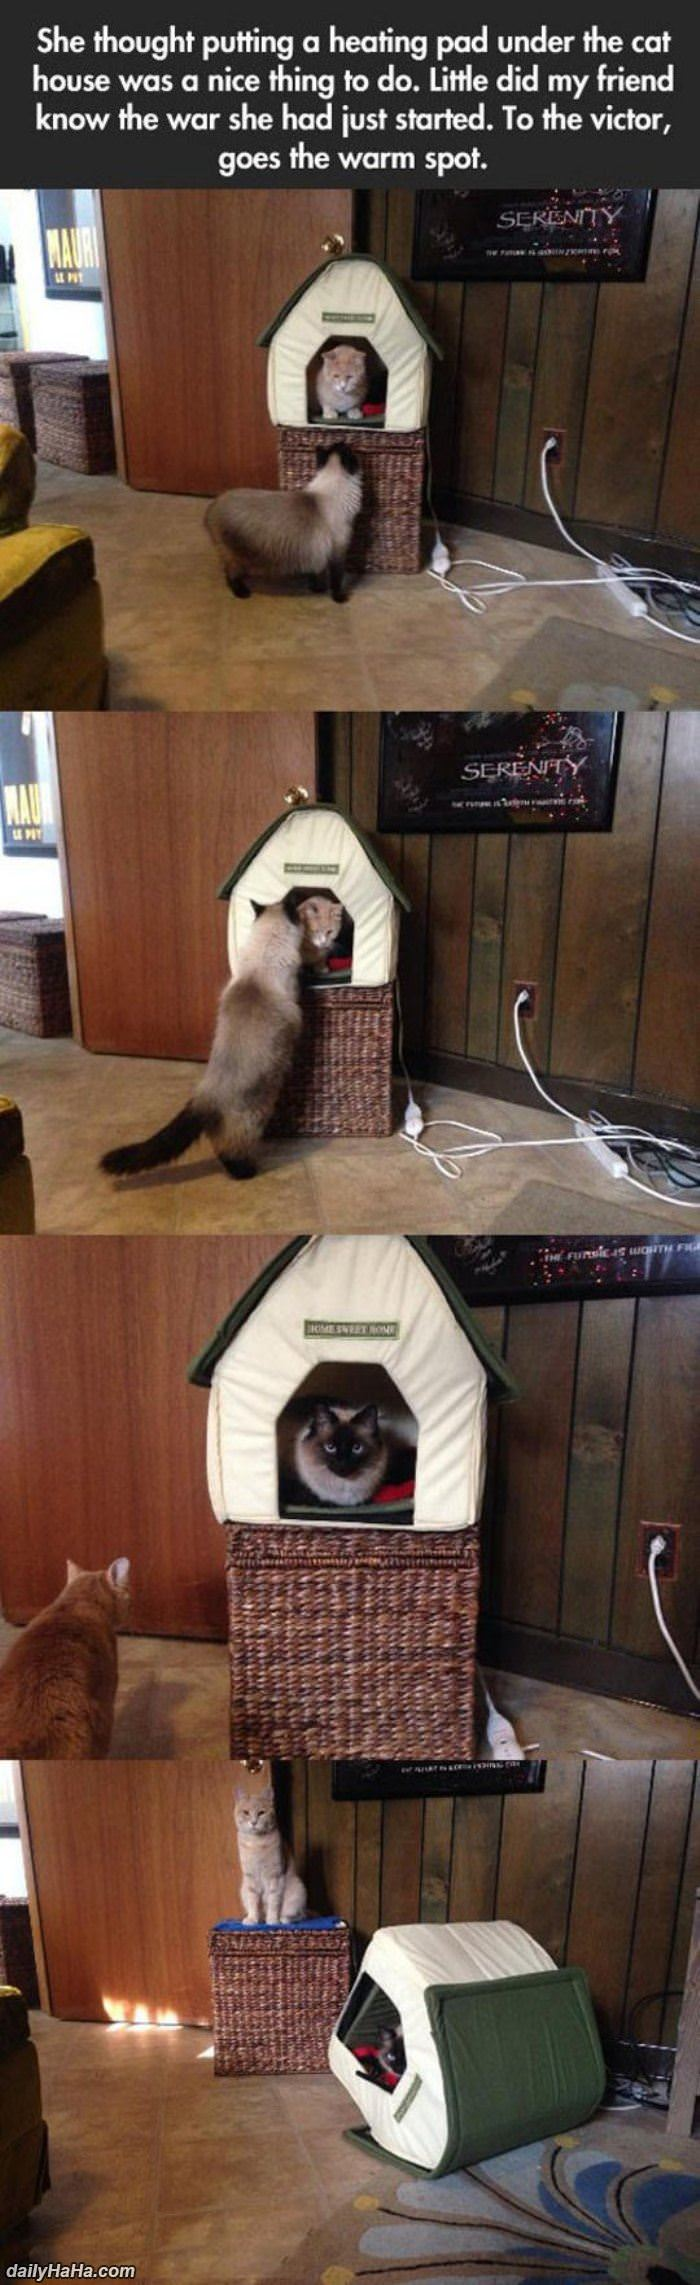 king of the kitty house funny picture